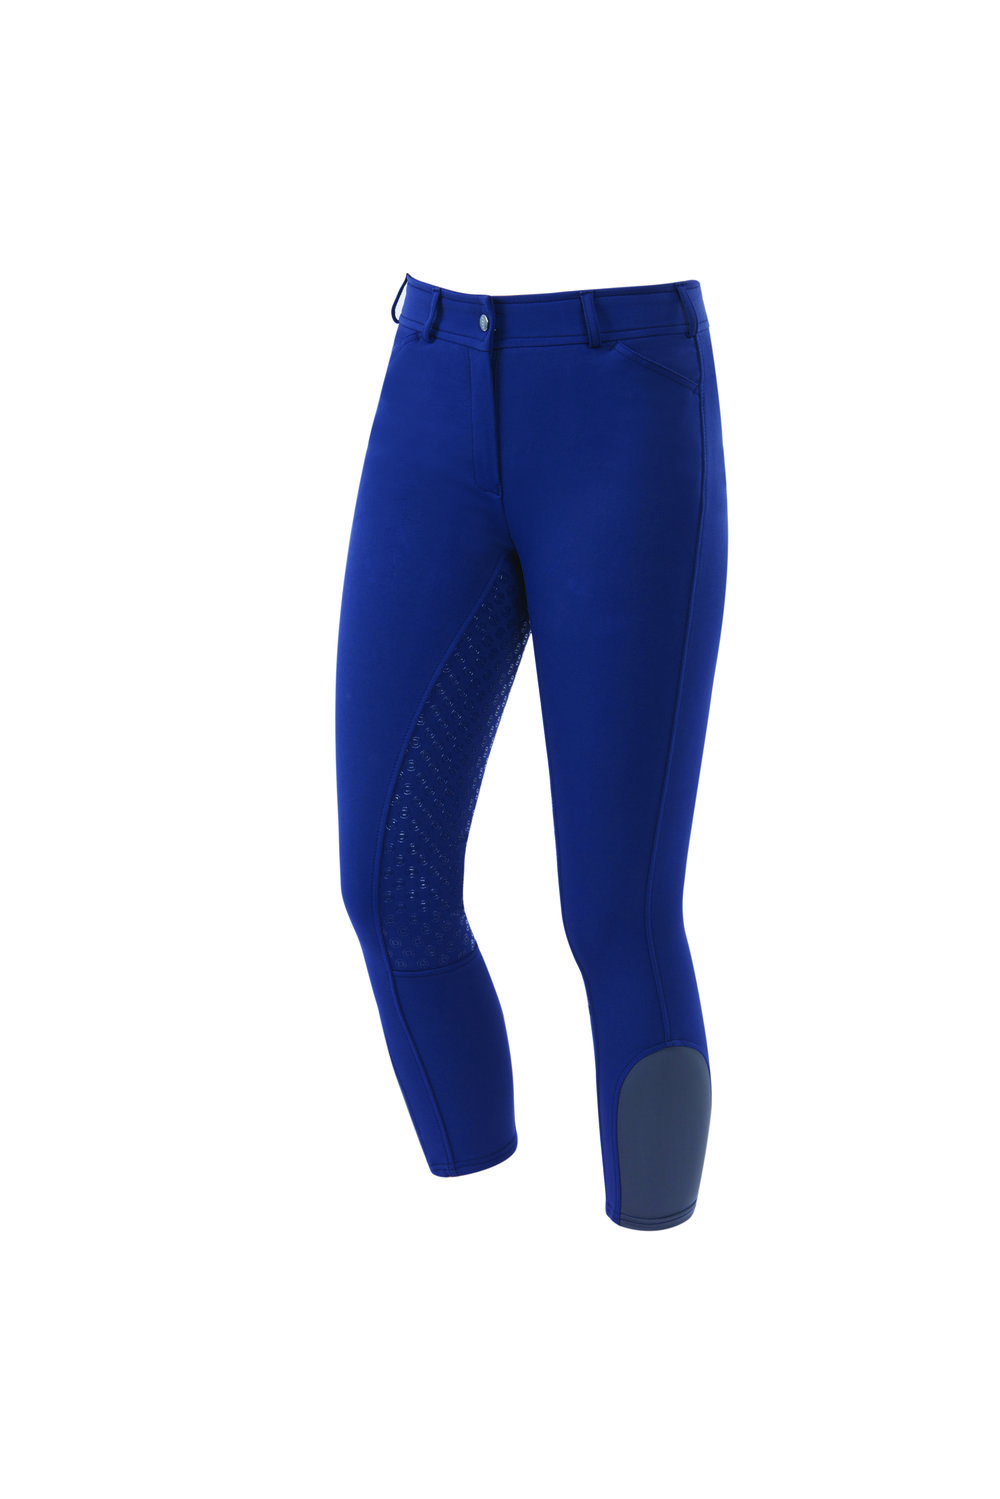 The Elite Gel Breeches have an air-panel cuff for a close fit